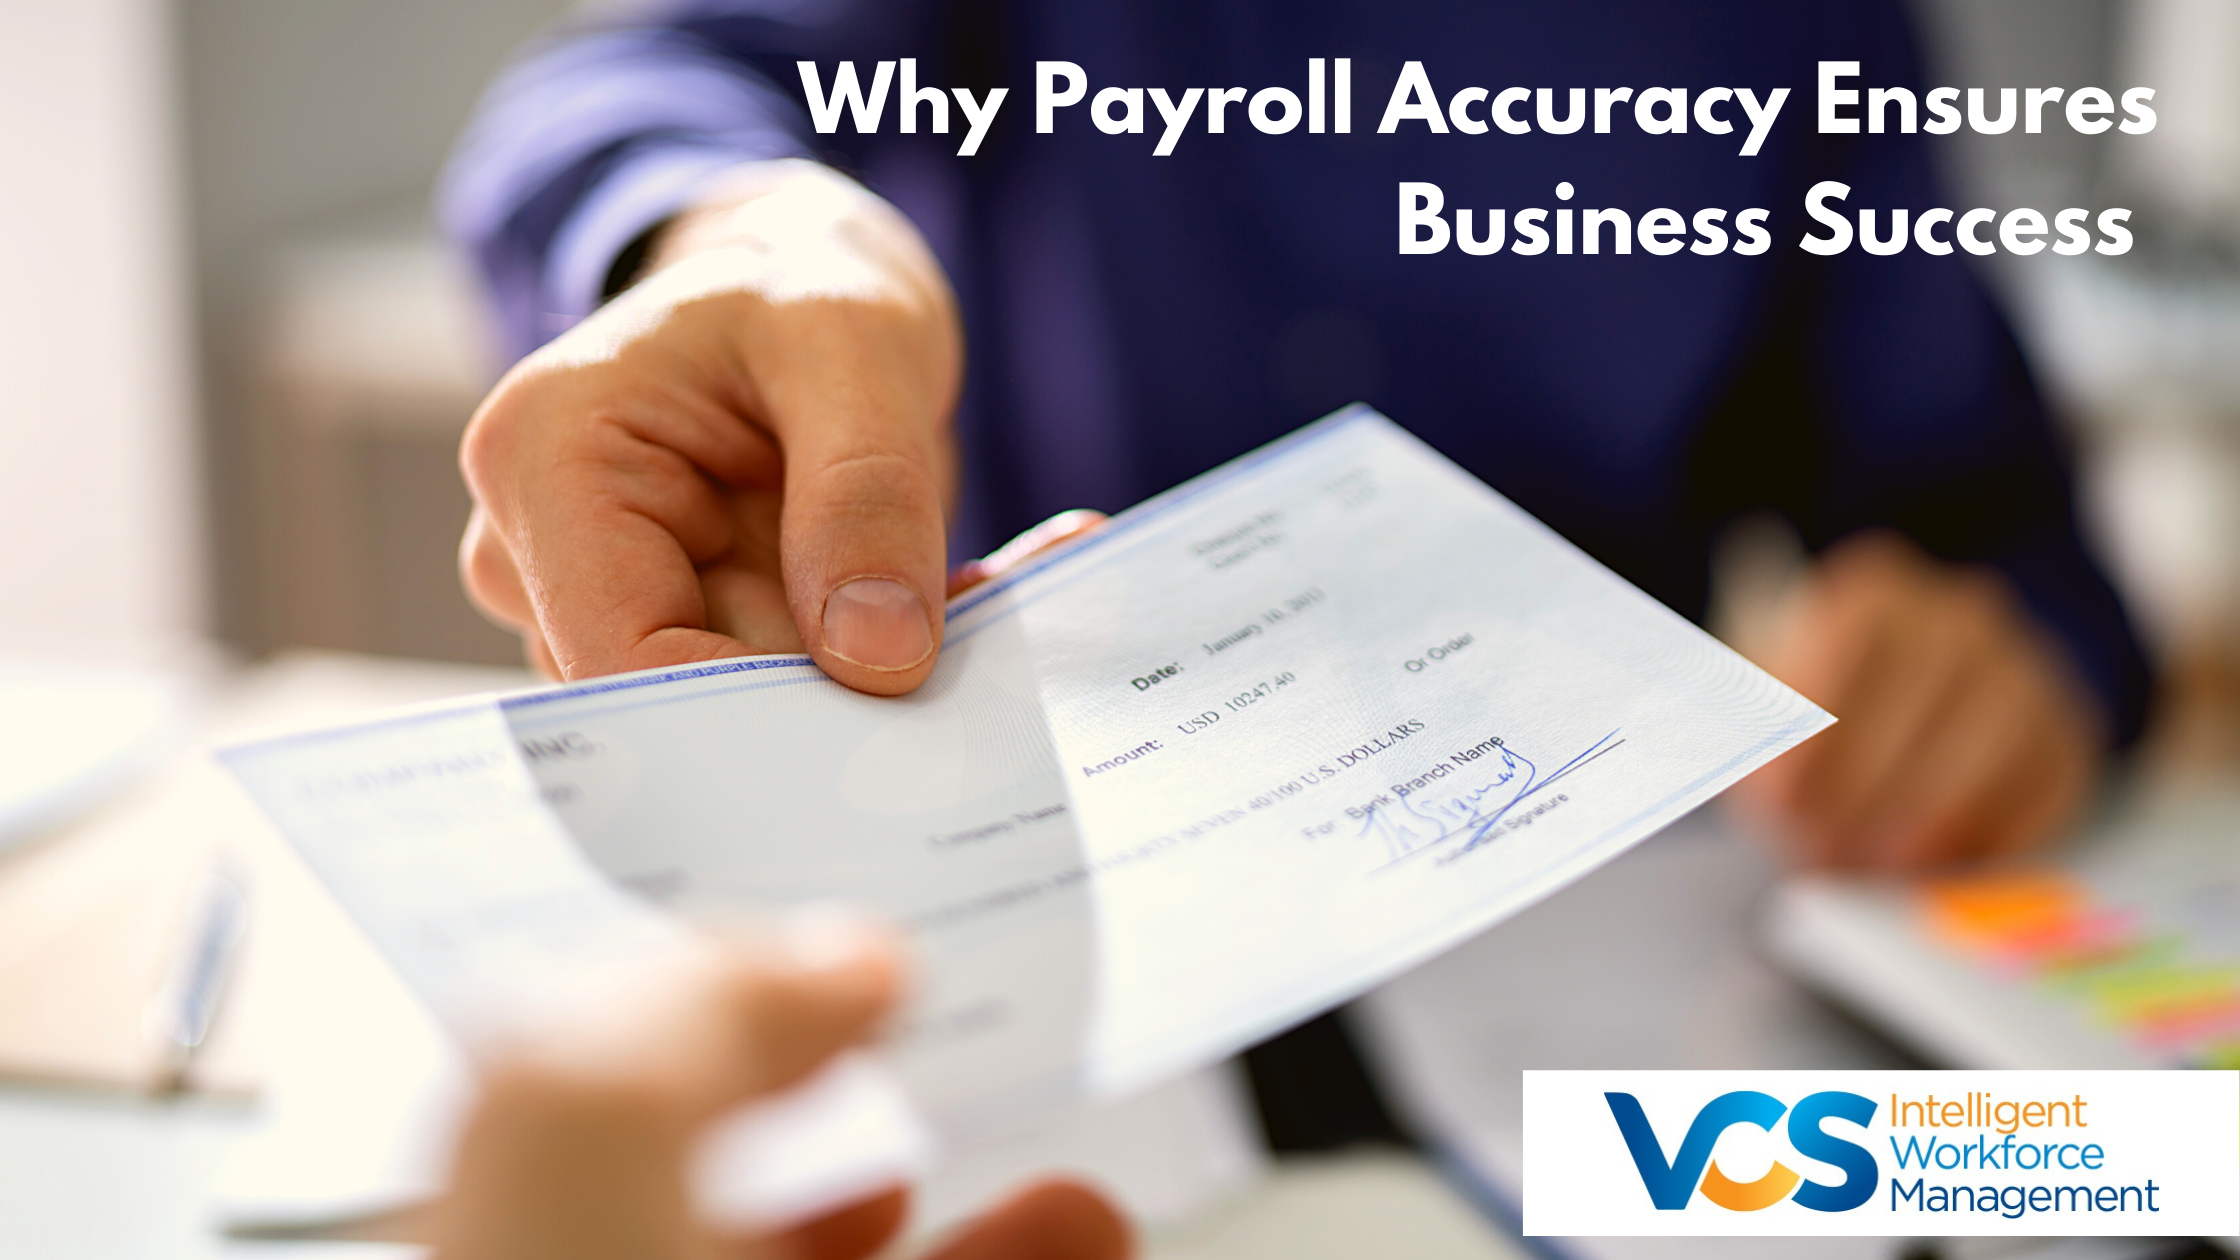 Why Payroll Accuracy Ensures Business Success